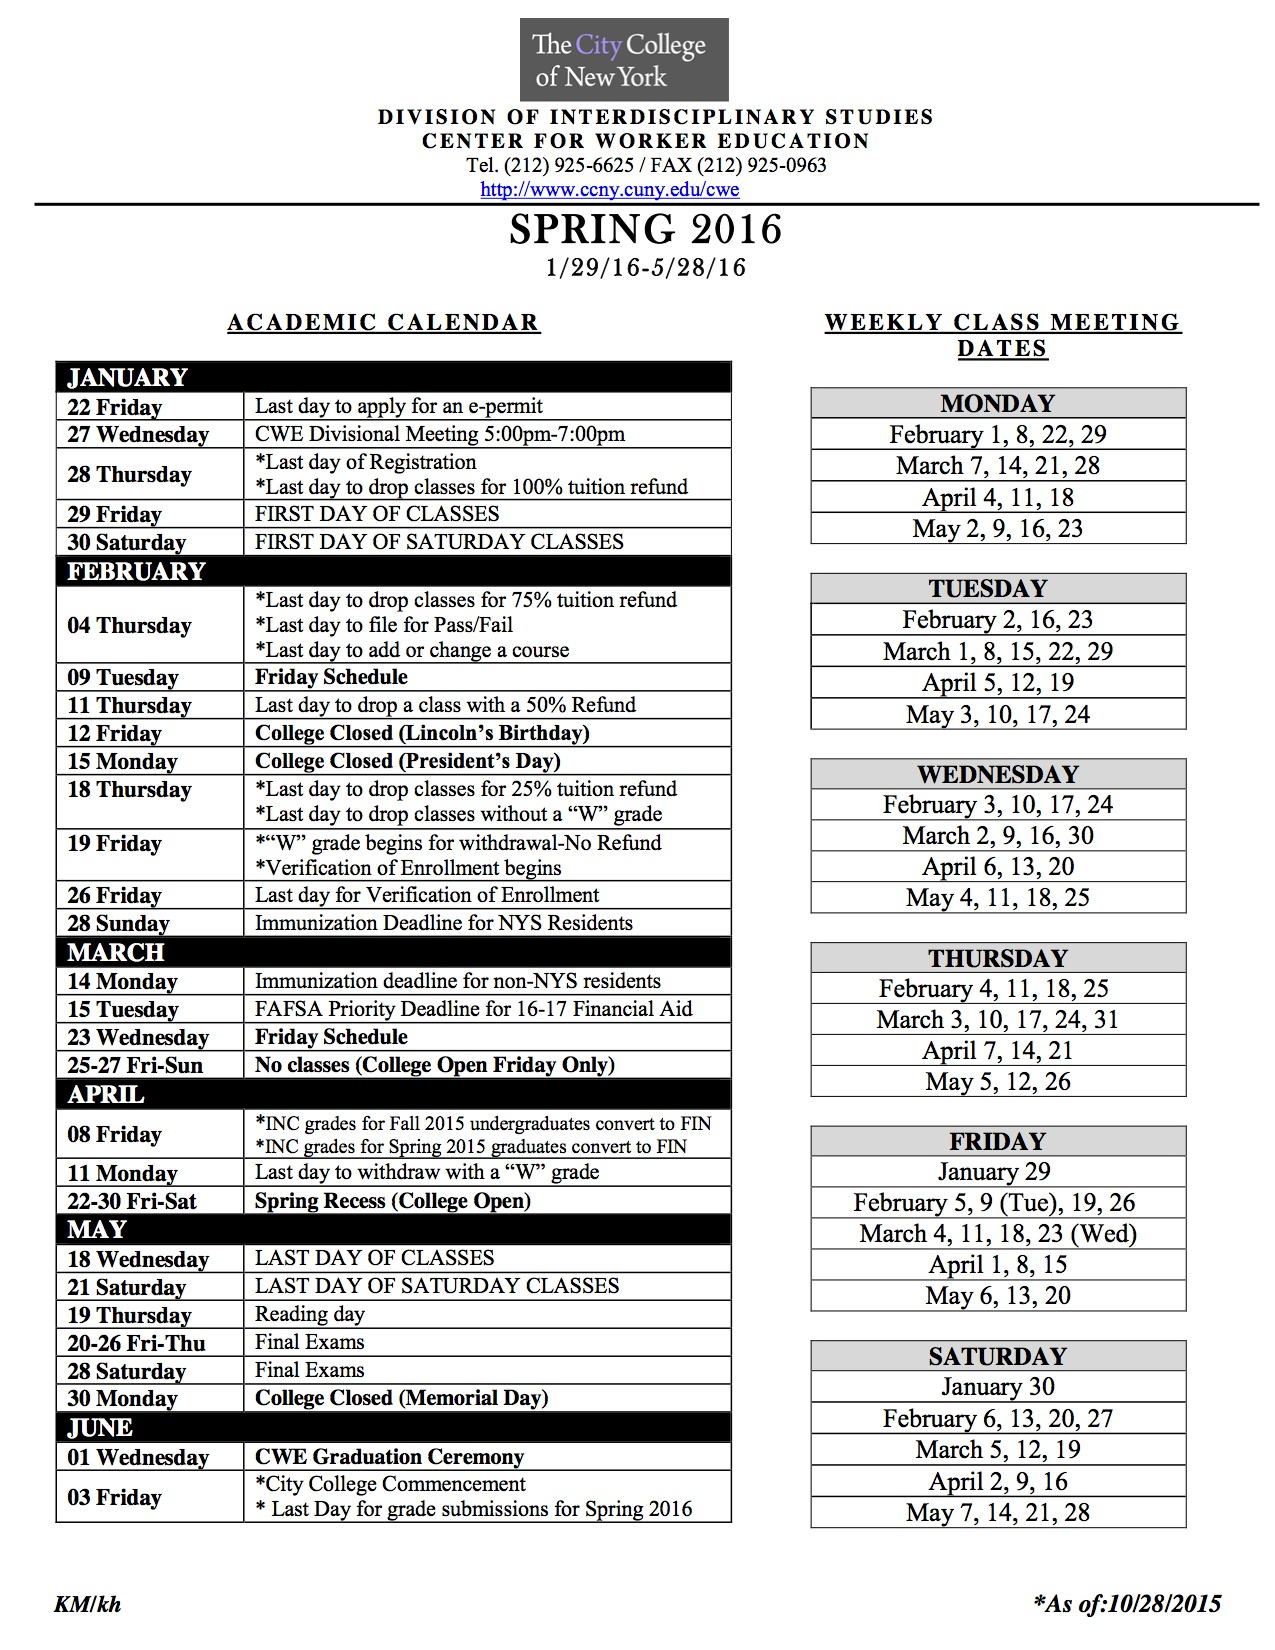 Academic Calendar | The City College Of New York inside Queensborugh Commuity College Calendar